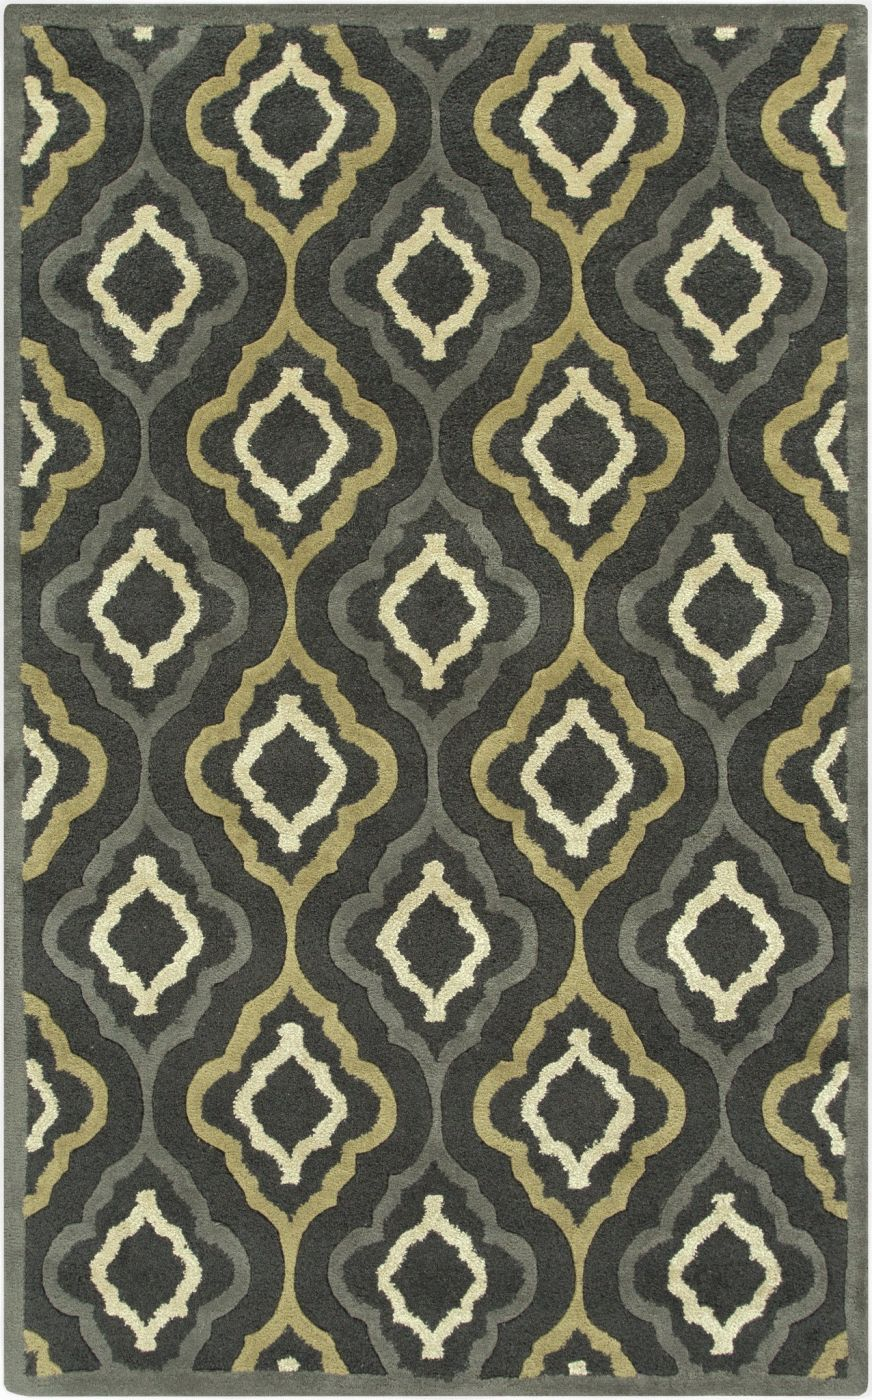 Surya Blowout Sale Up To 70 Off Can2025 913 Modern Classics Geometric Area Rug Black Gray Only Only 2 821 80 At Contemporary Furniture Warehouse